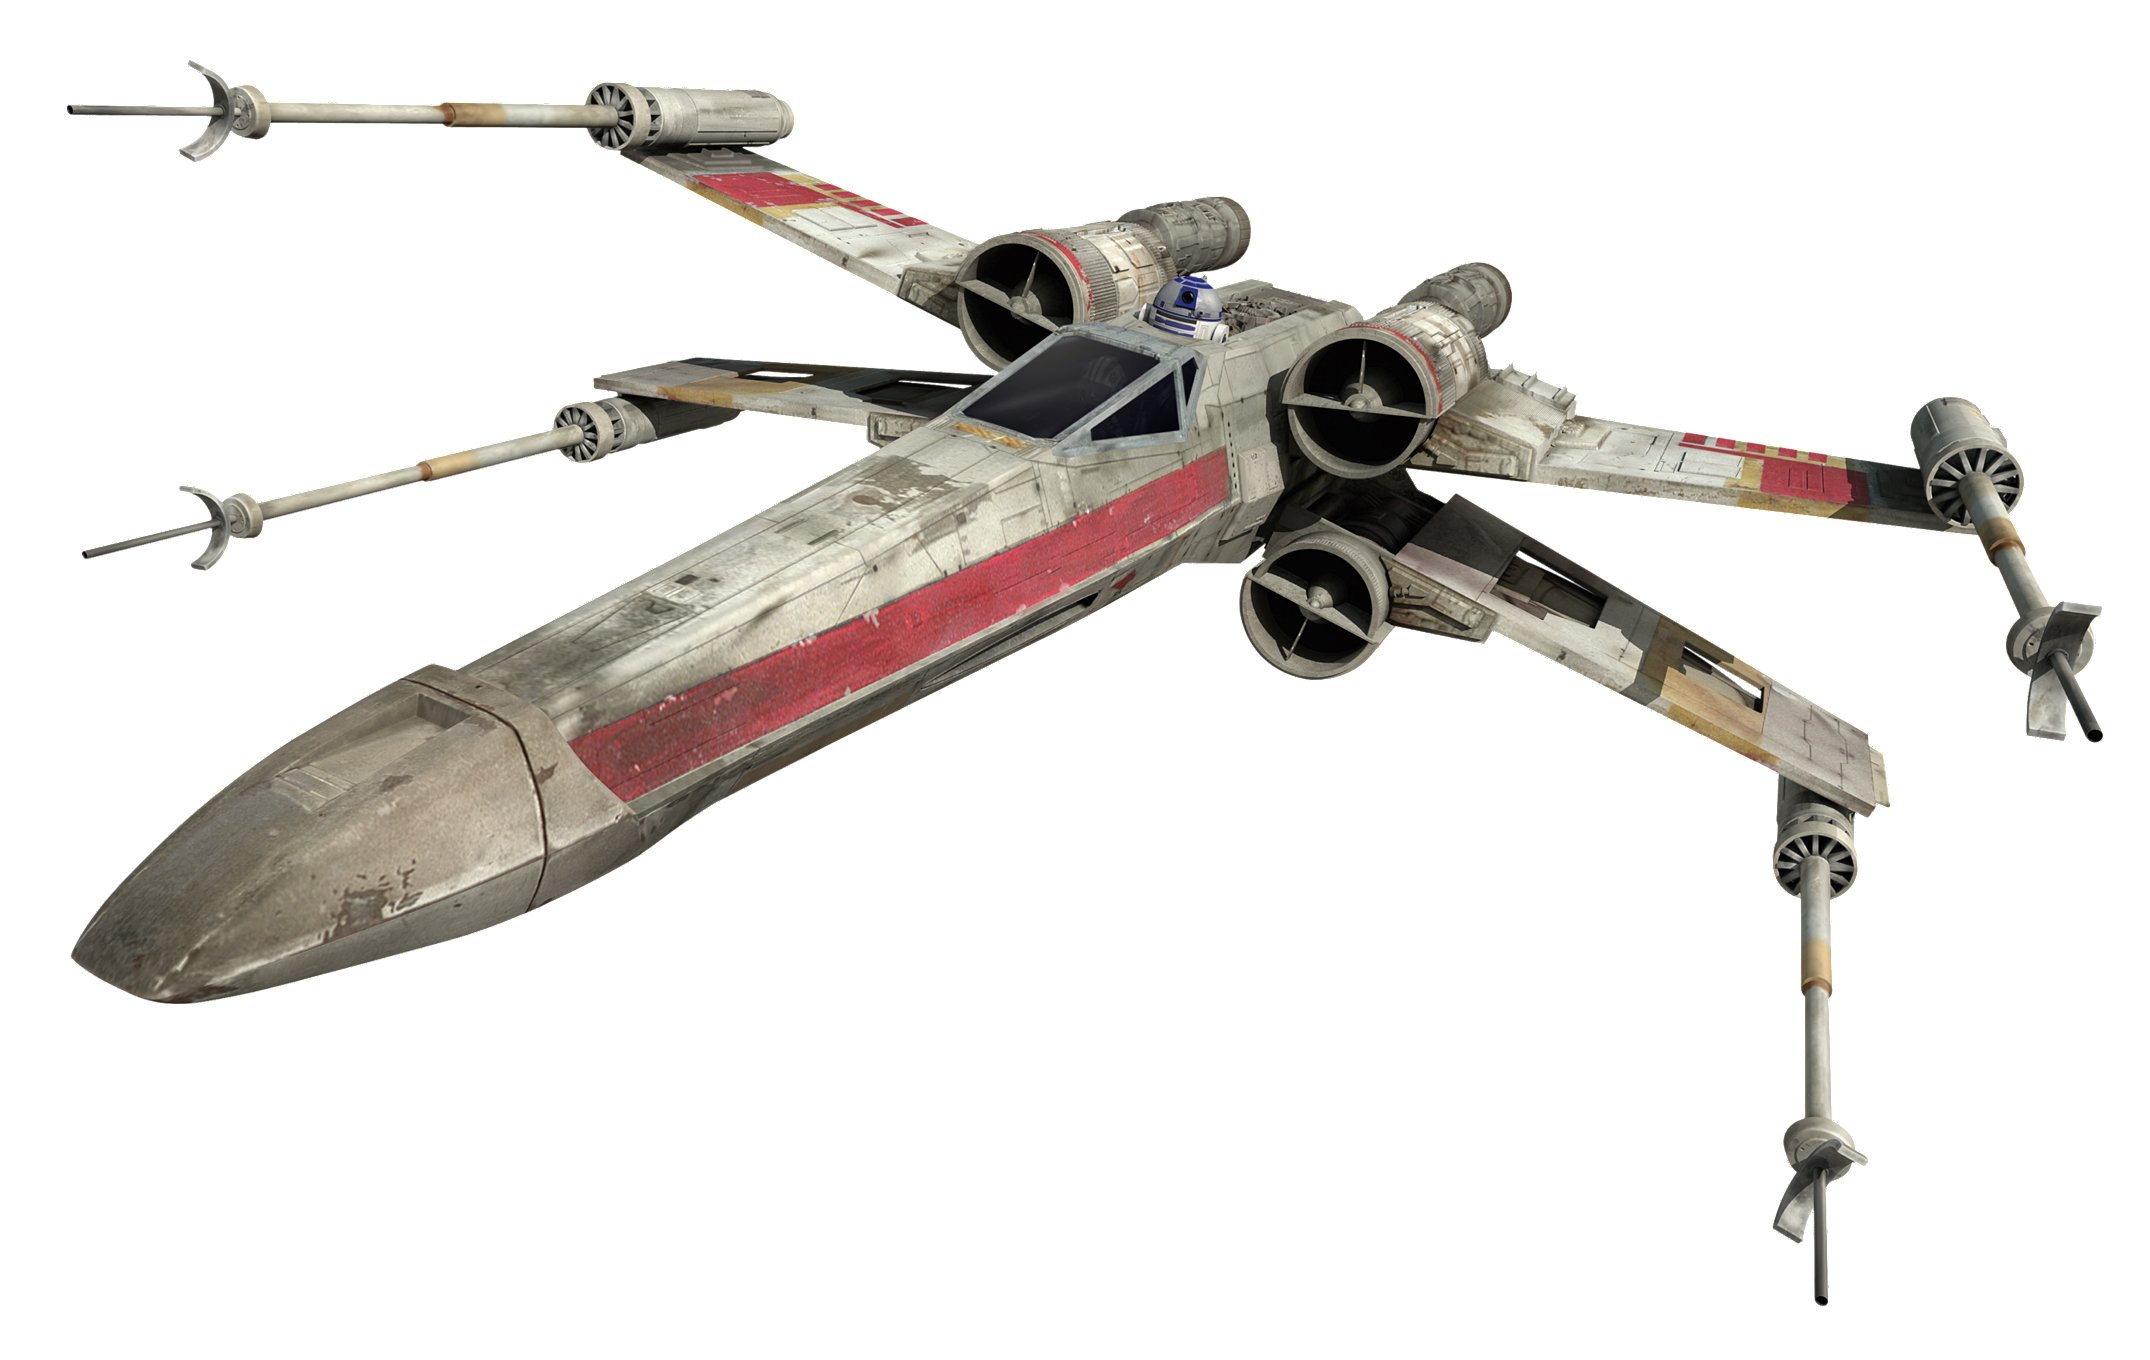 star Wars X wing Spaceship Futuristic Space Sci fi Xwing 2150x1360